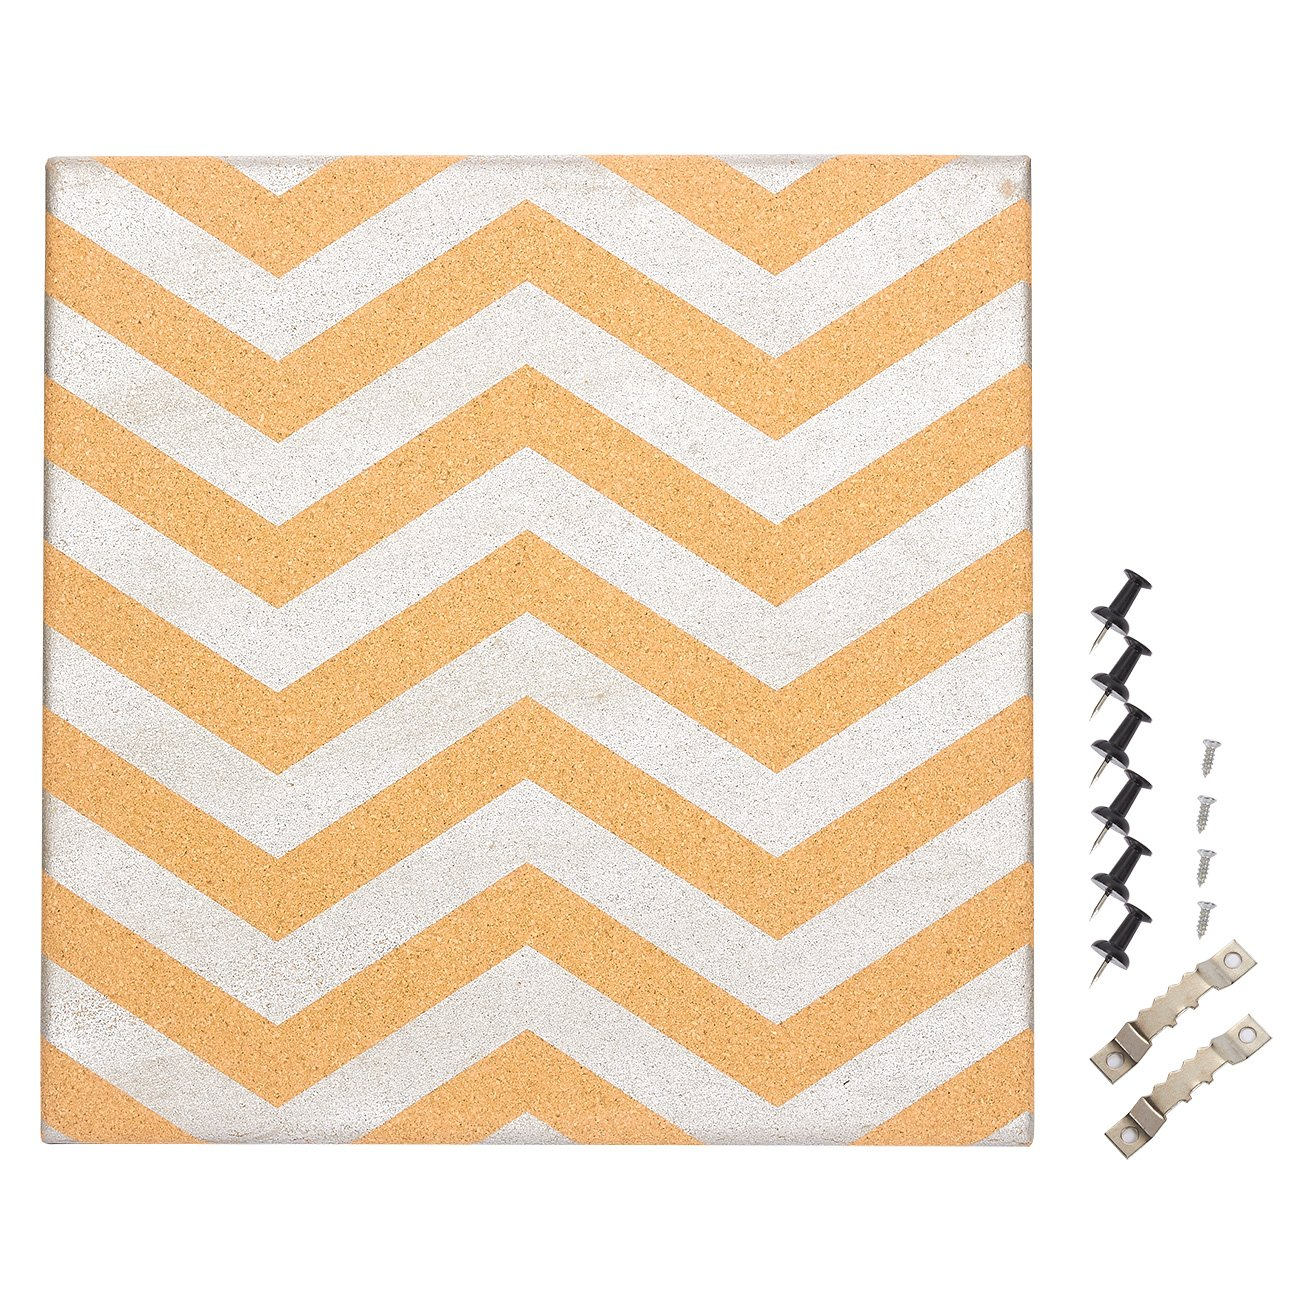 Cork Bulletin Board - Decorative Wall DecorCorkboard with Silver Chevron Design, 6 Push Pins Included for Pinning Memos and Reminders, 15.7 x 15.7 x 0.7 inches Juvale